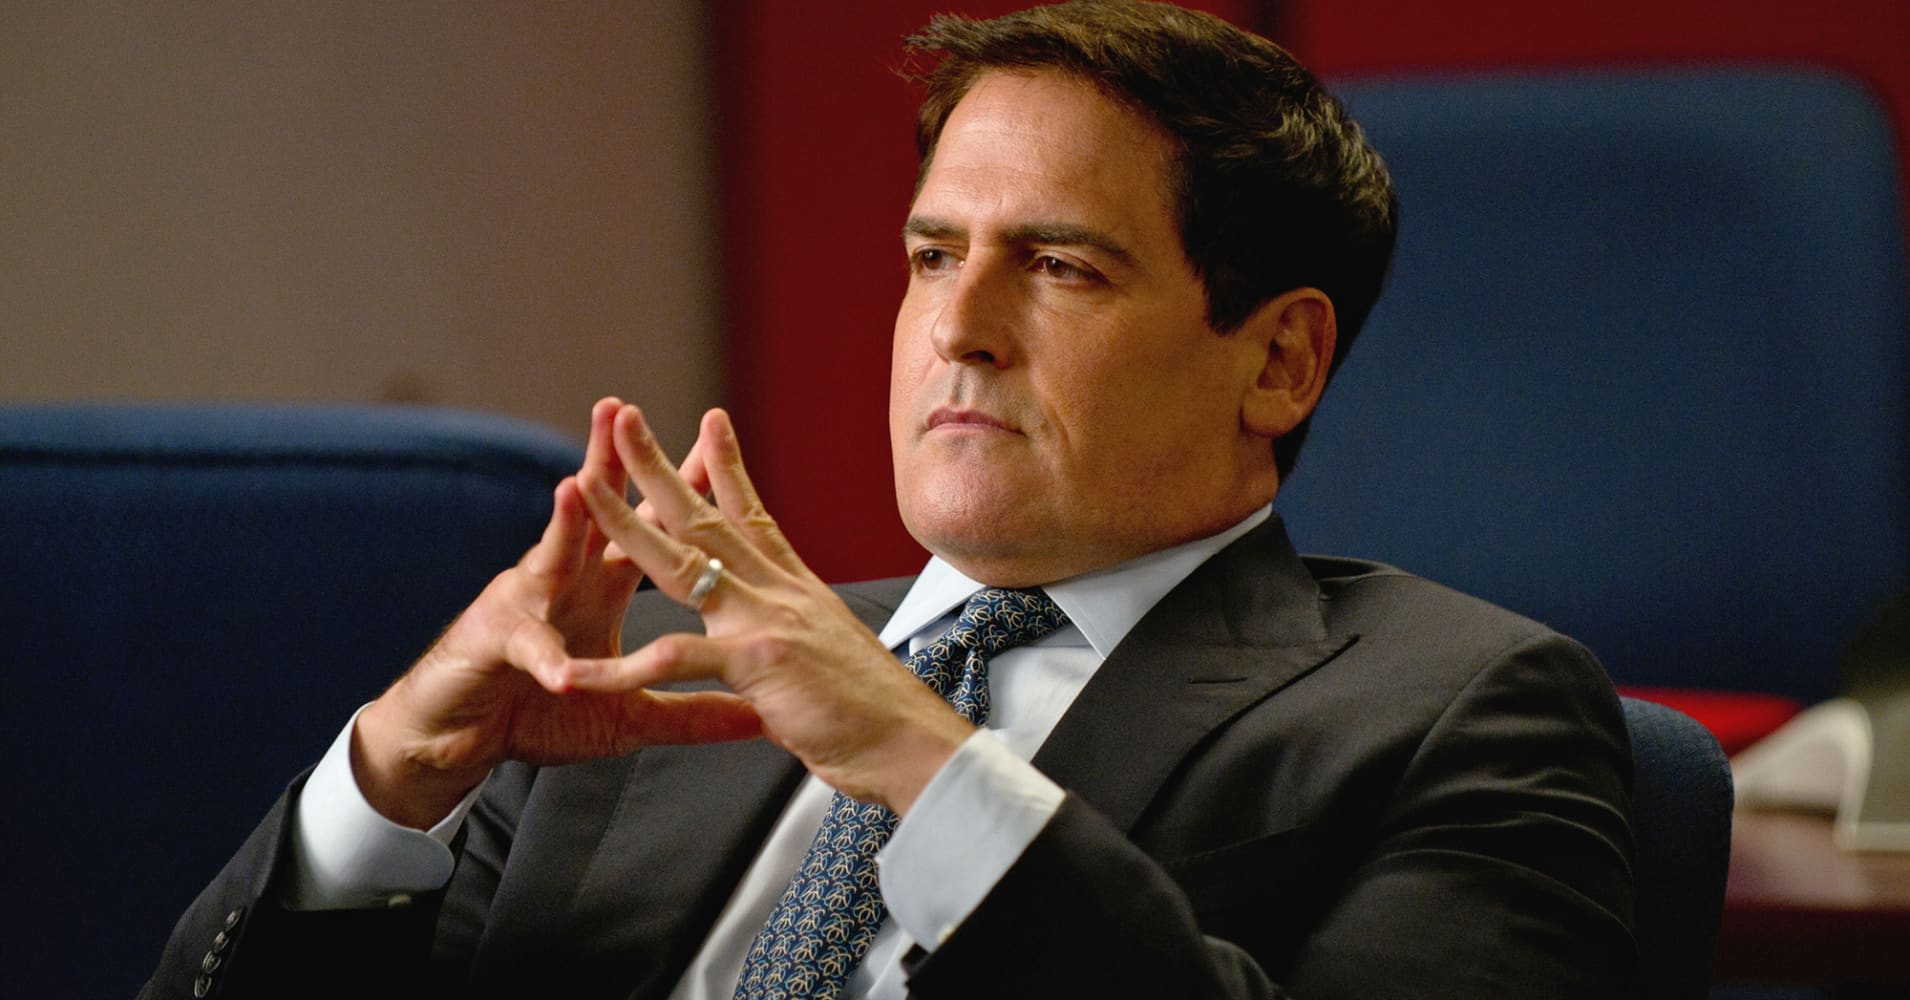 http://fm.cnbc.com/applications/cnbc.com/resources/img/editorial/2014/07/25/101867402-mark-cuban.1910x1000.jpg